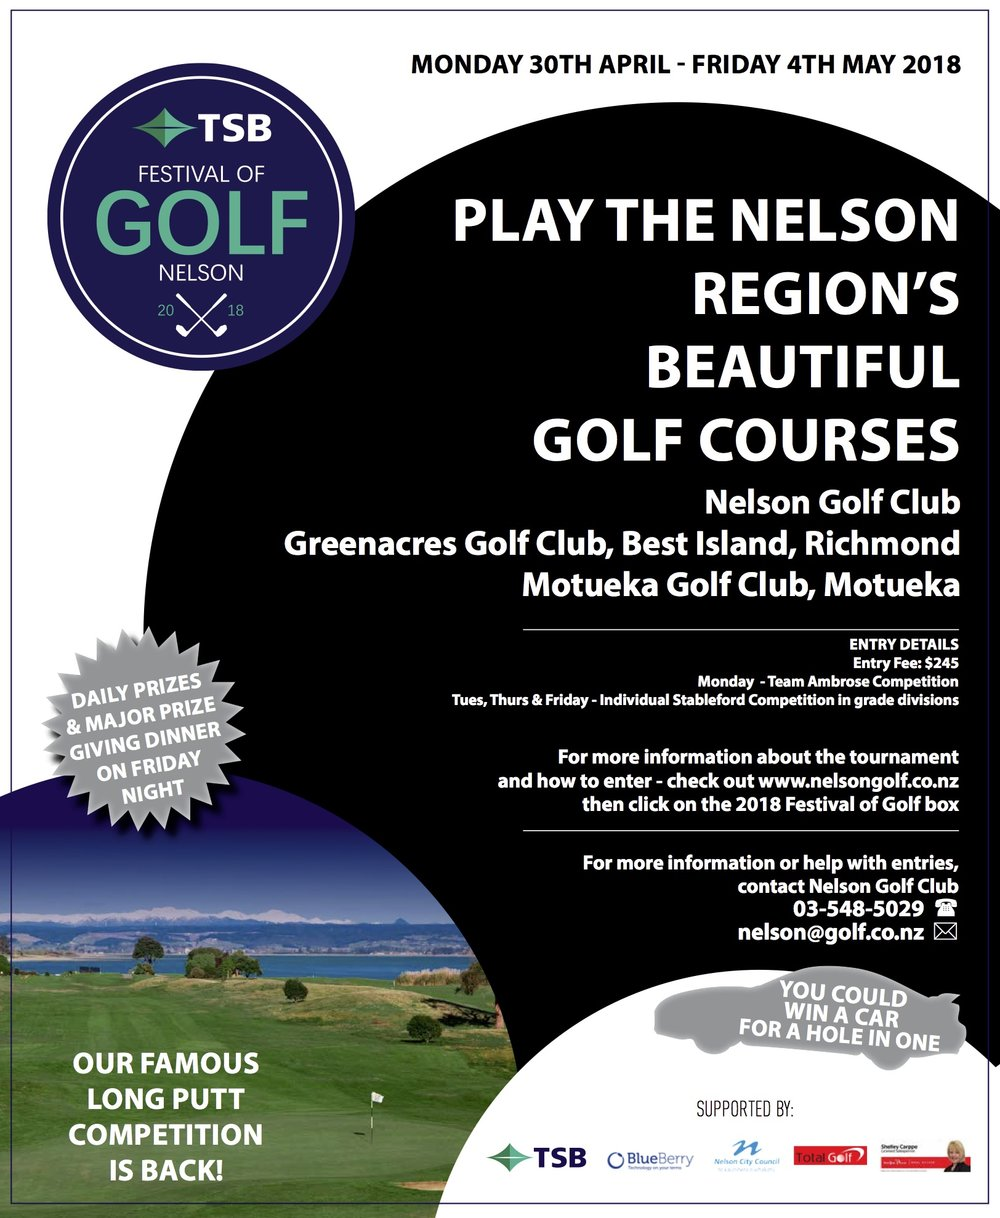 Nelson Festival of Golf FULL PAGE 201711.jpeg